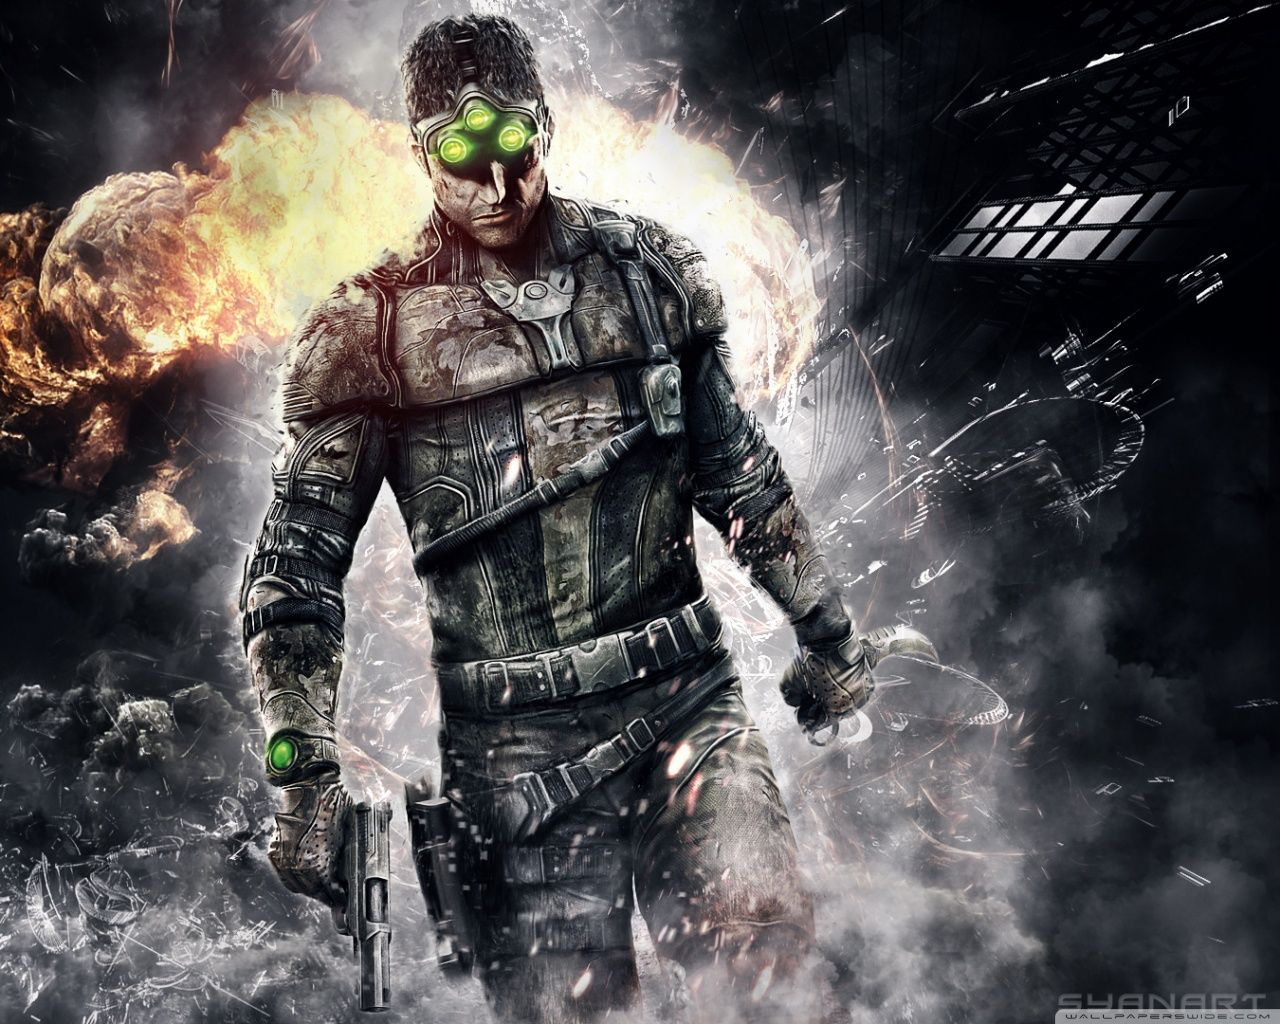 Splinter Cell Blacklist Wallpaper Games Pinterest